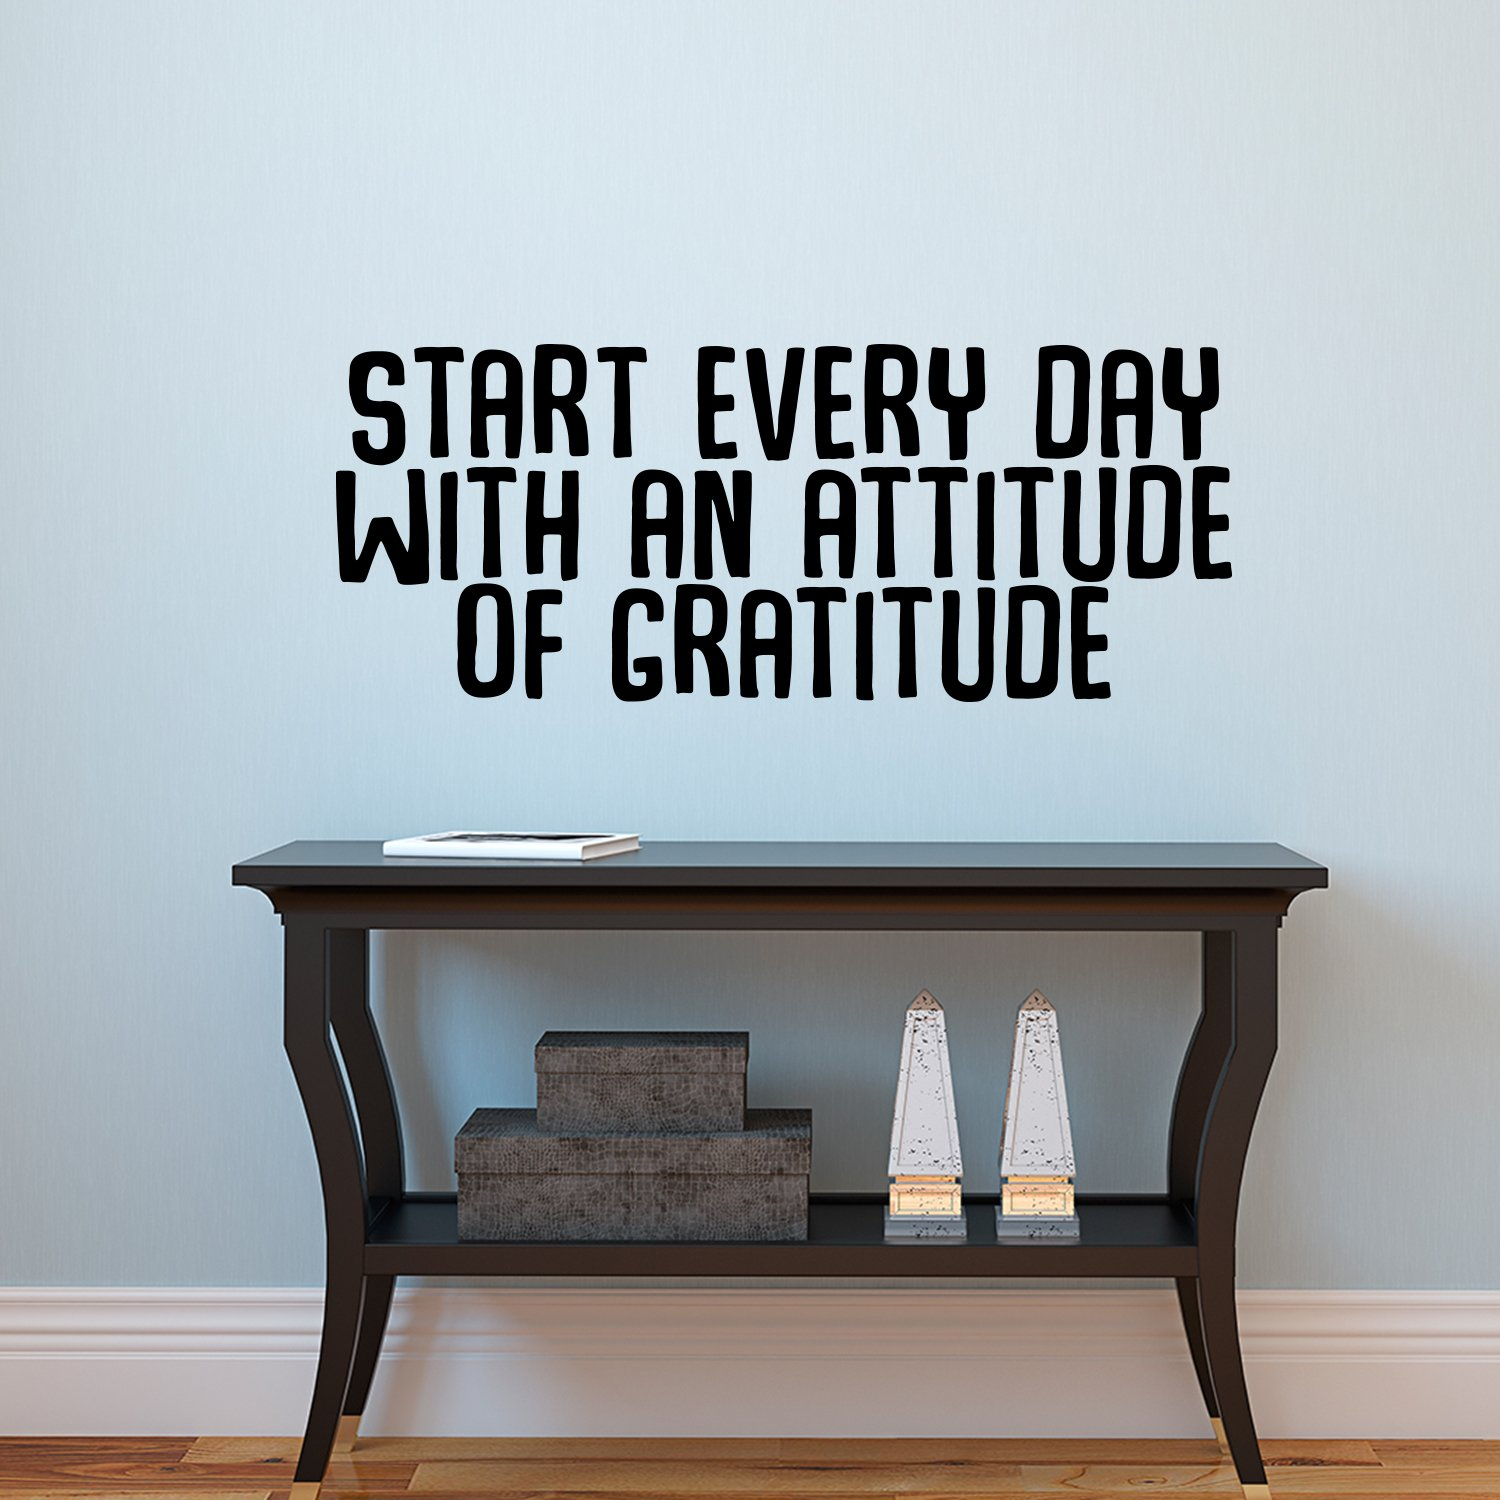 Vinyl Art Wall Decal - Start Every Day With An Attitude Of Gratitude - 14'' x 35'' - Motivational Life Quotes - Home Office Wall Decoration - Positive Thinking - Bedroom Living Room Wall Decor